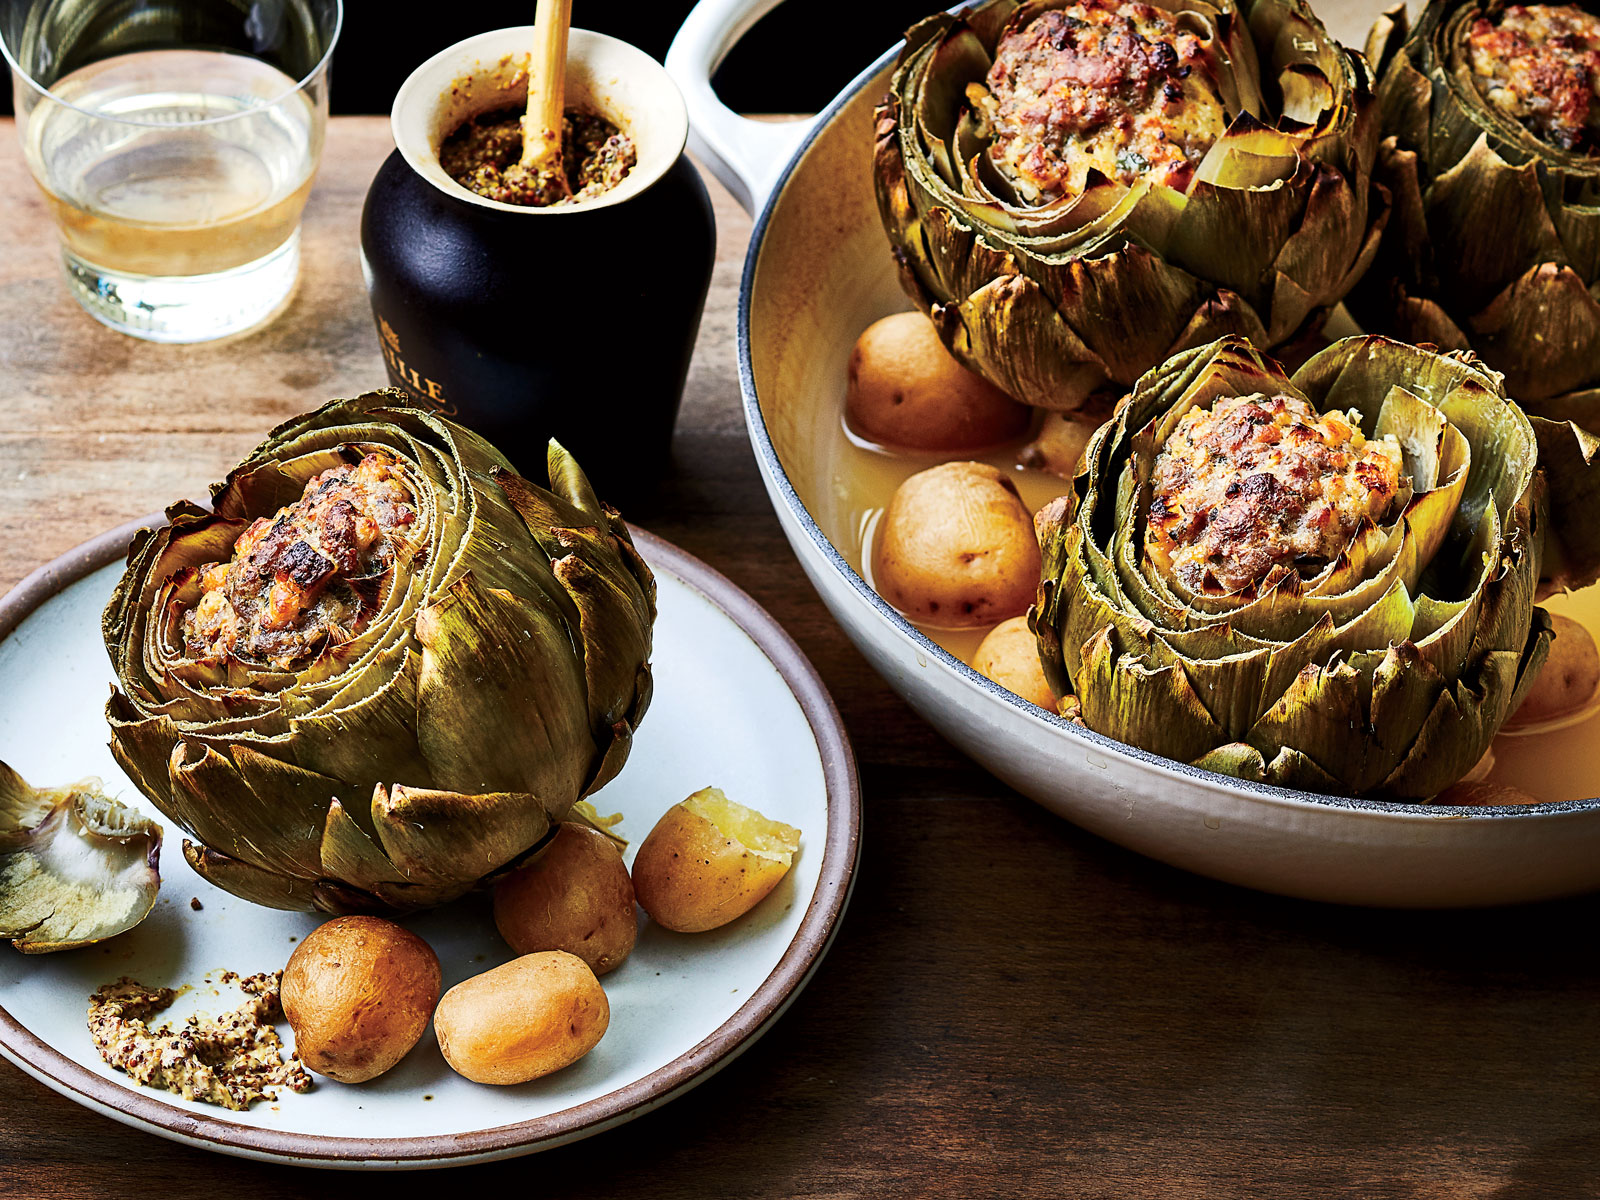 Sausage-Stuffed Artichokes with New Potatoes